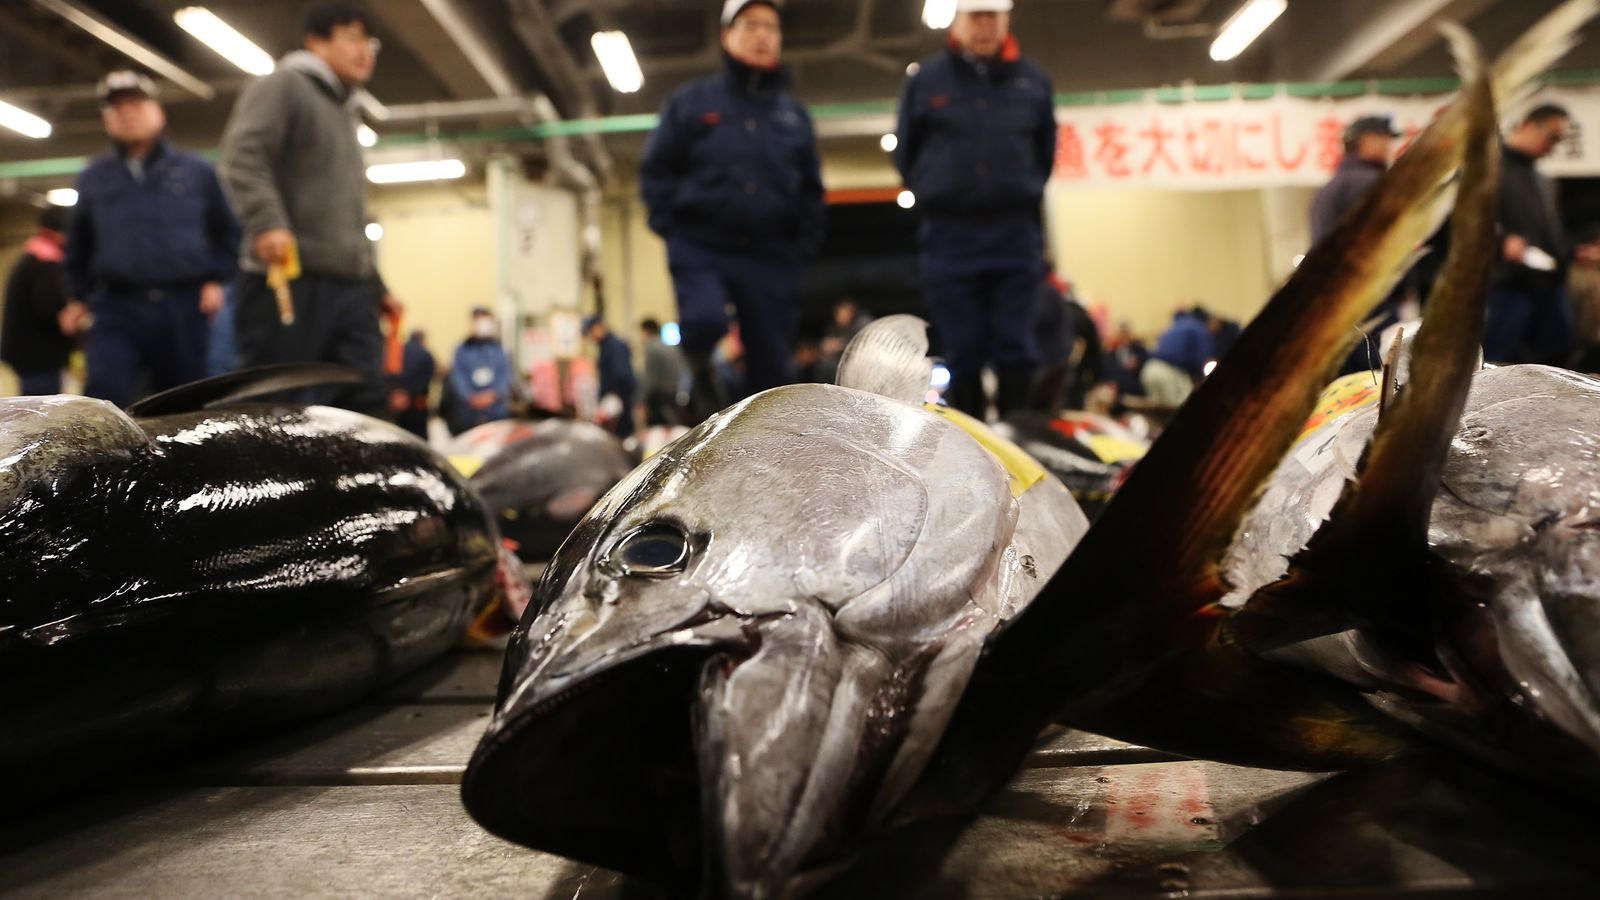 Japanese restaurateur pays princely sum of 118k for a for Tsukiji fish market chicago